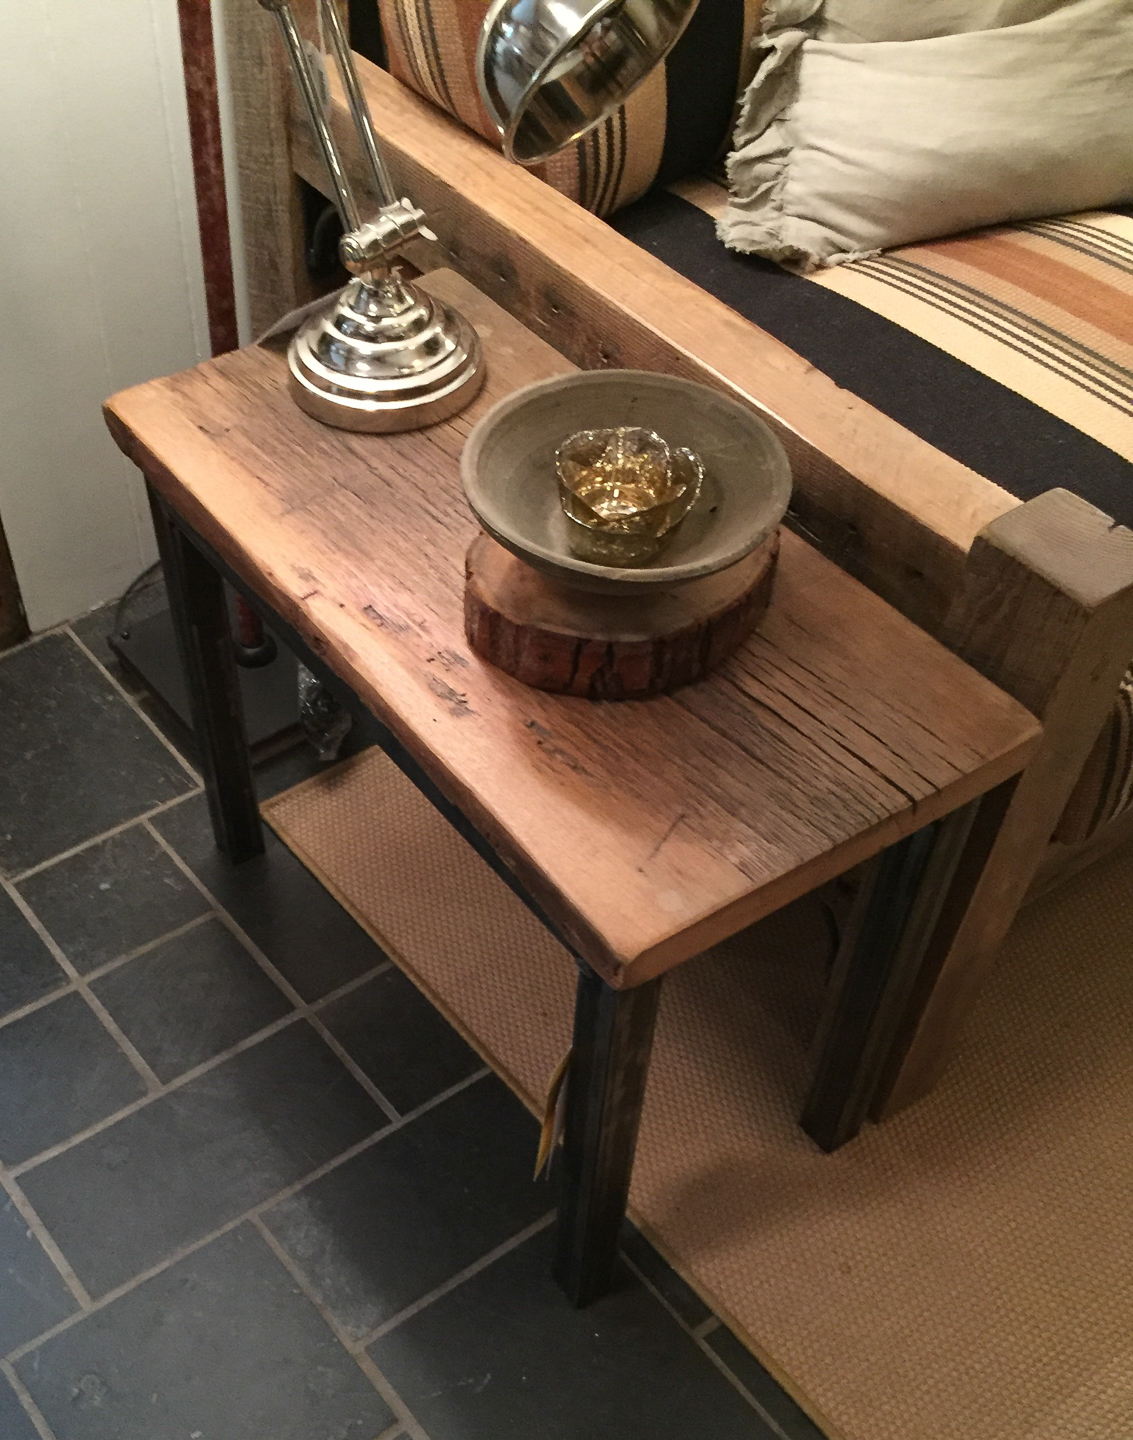 100 Reclaimed Oak Coffee Table Coffee Table With  : side table reclaimed oak and steel base from 45.32.79.15 size 1133 x 1440 jpeg 1106kB